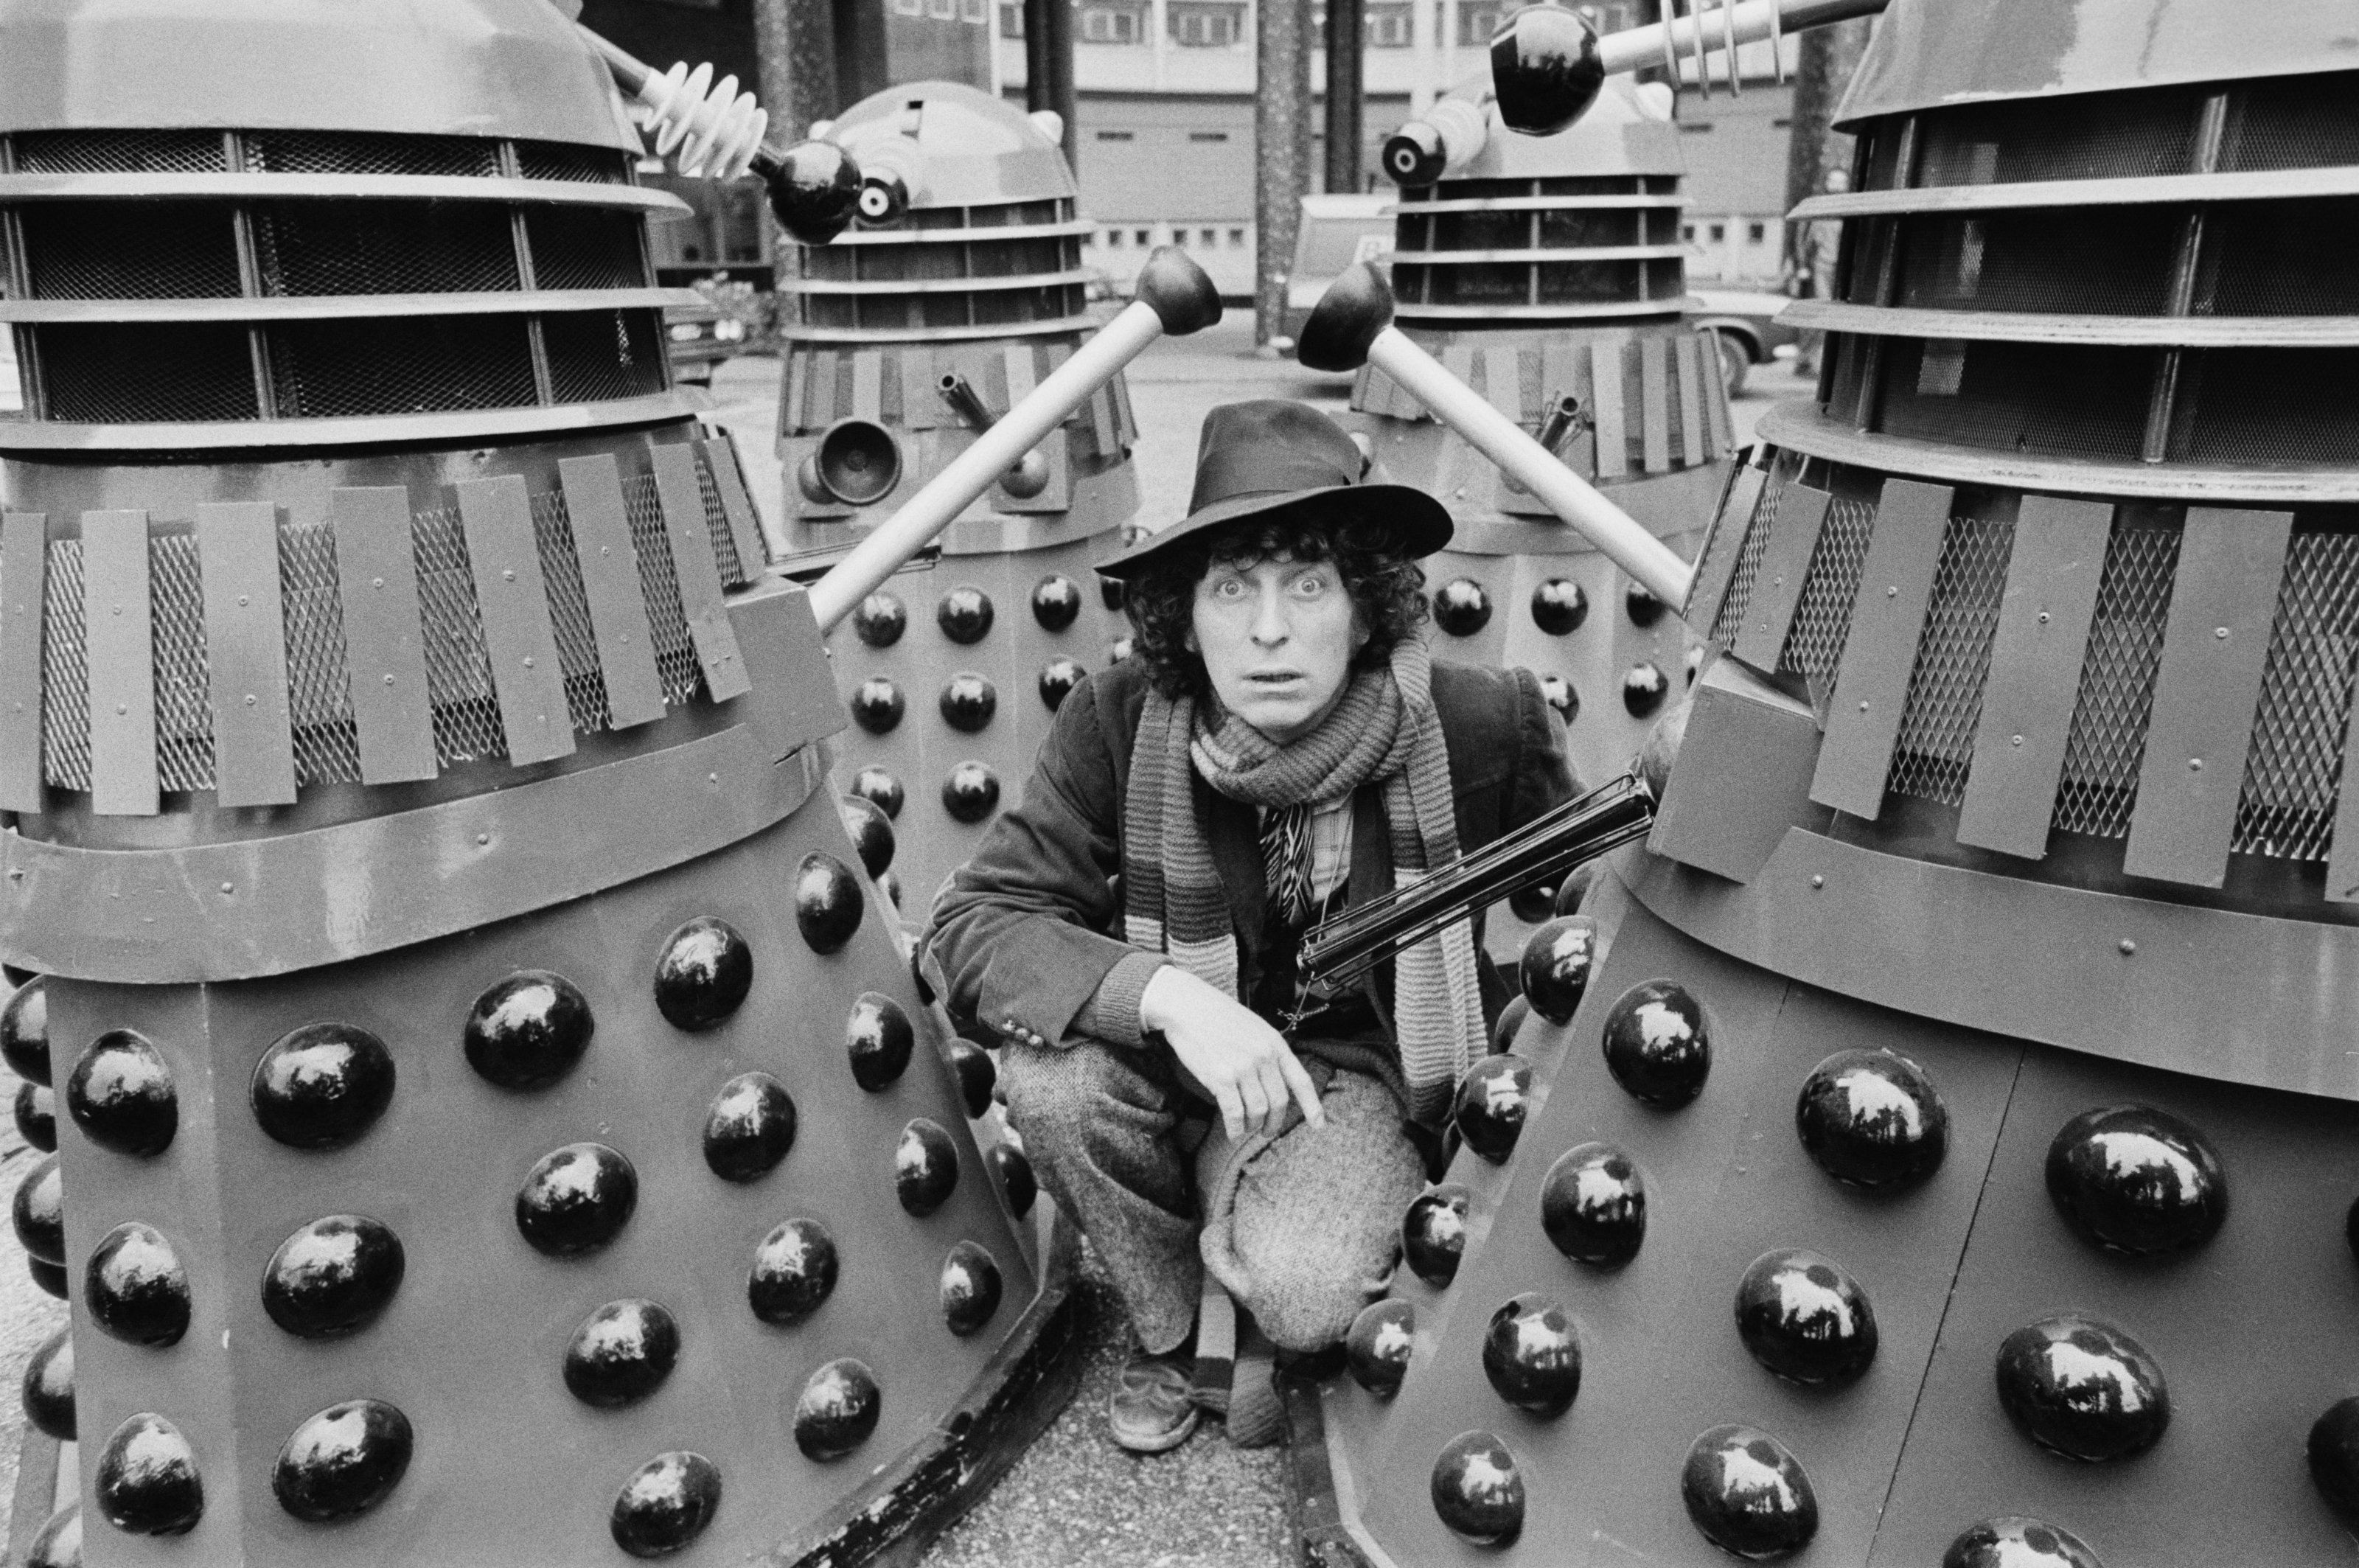 Doctor Who and continuity: Did it always matter?